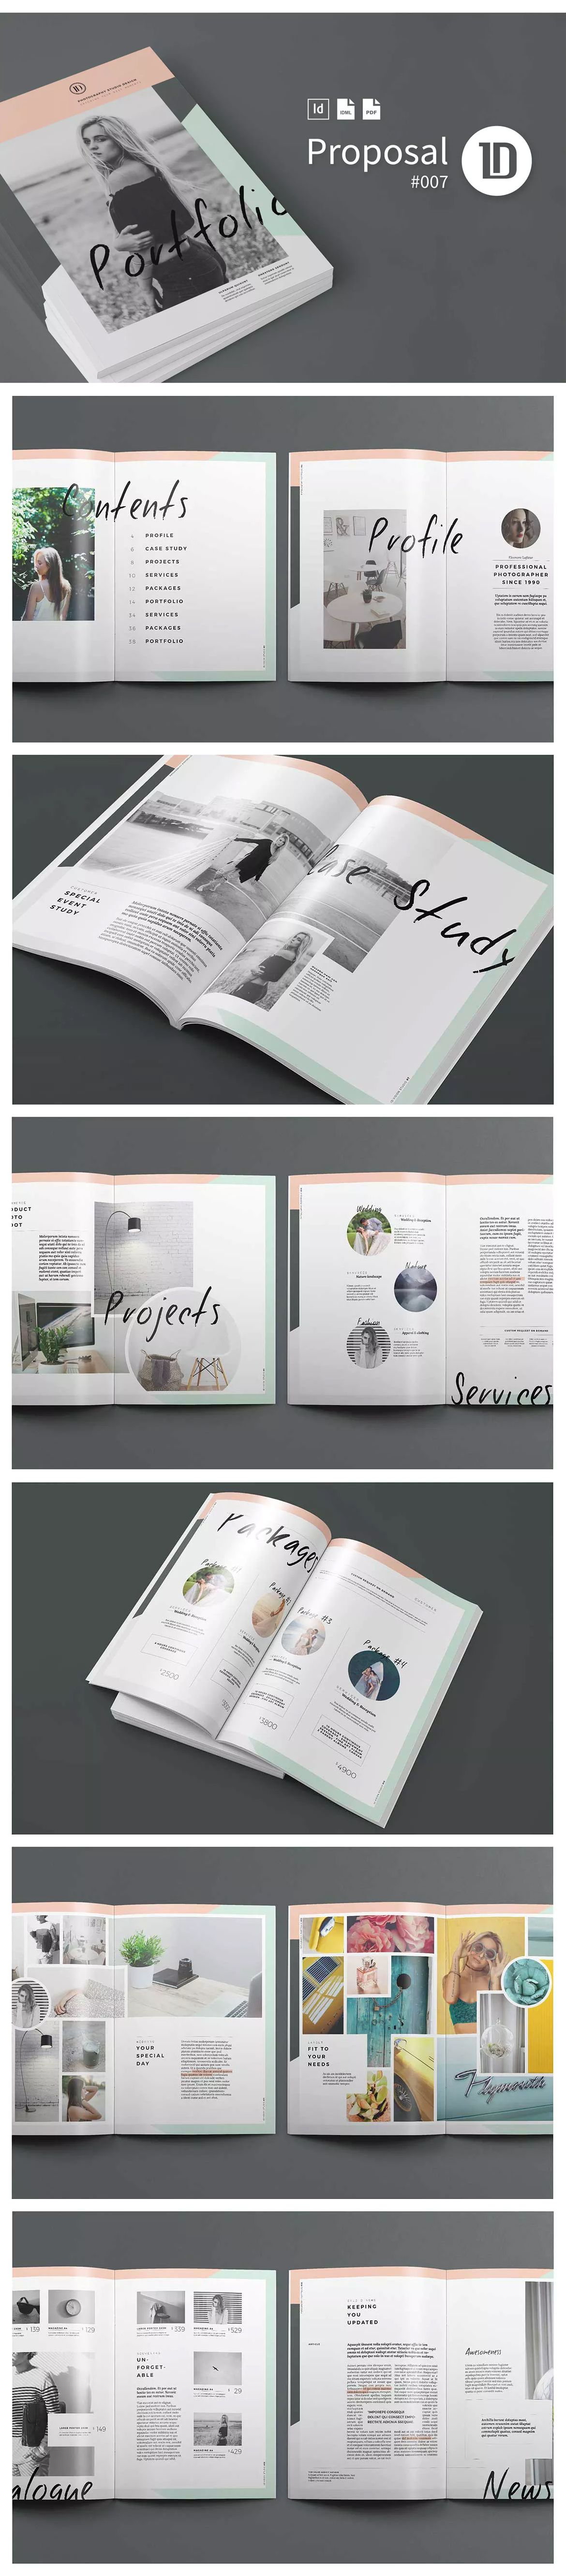 Portfolio Template INDD, EPS - 40 Pages A4 and US Letter Size ...